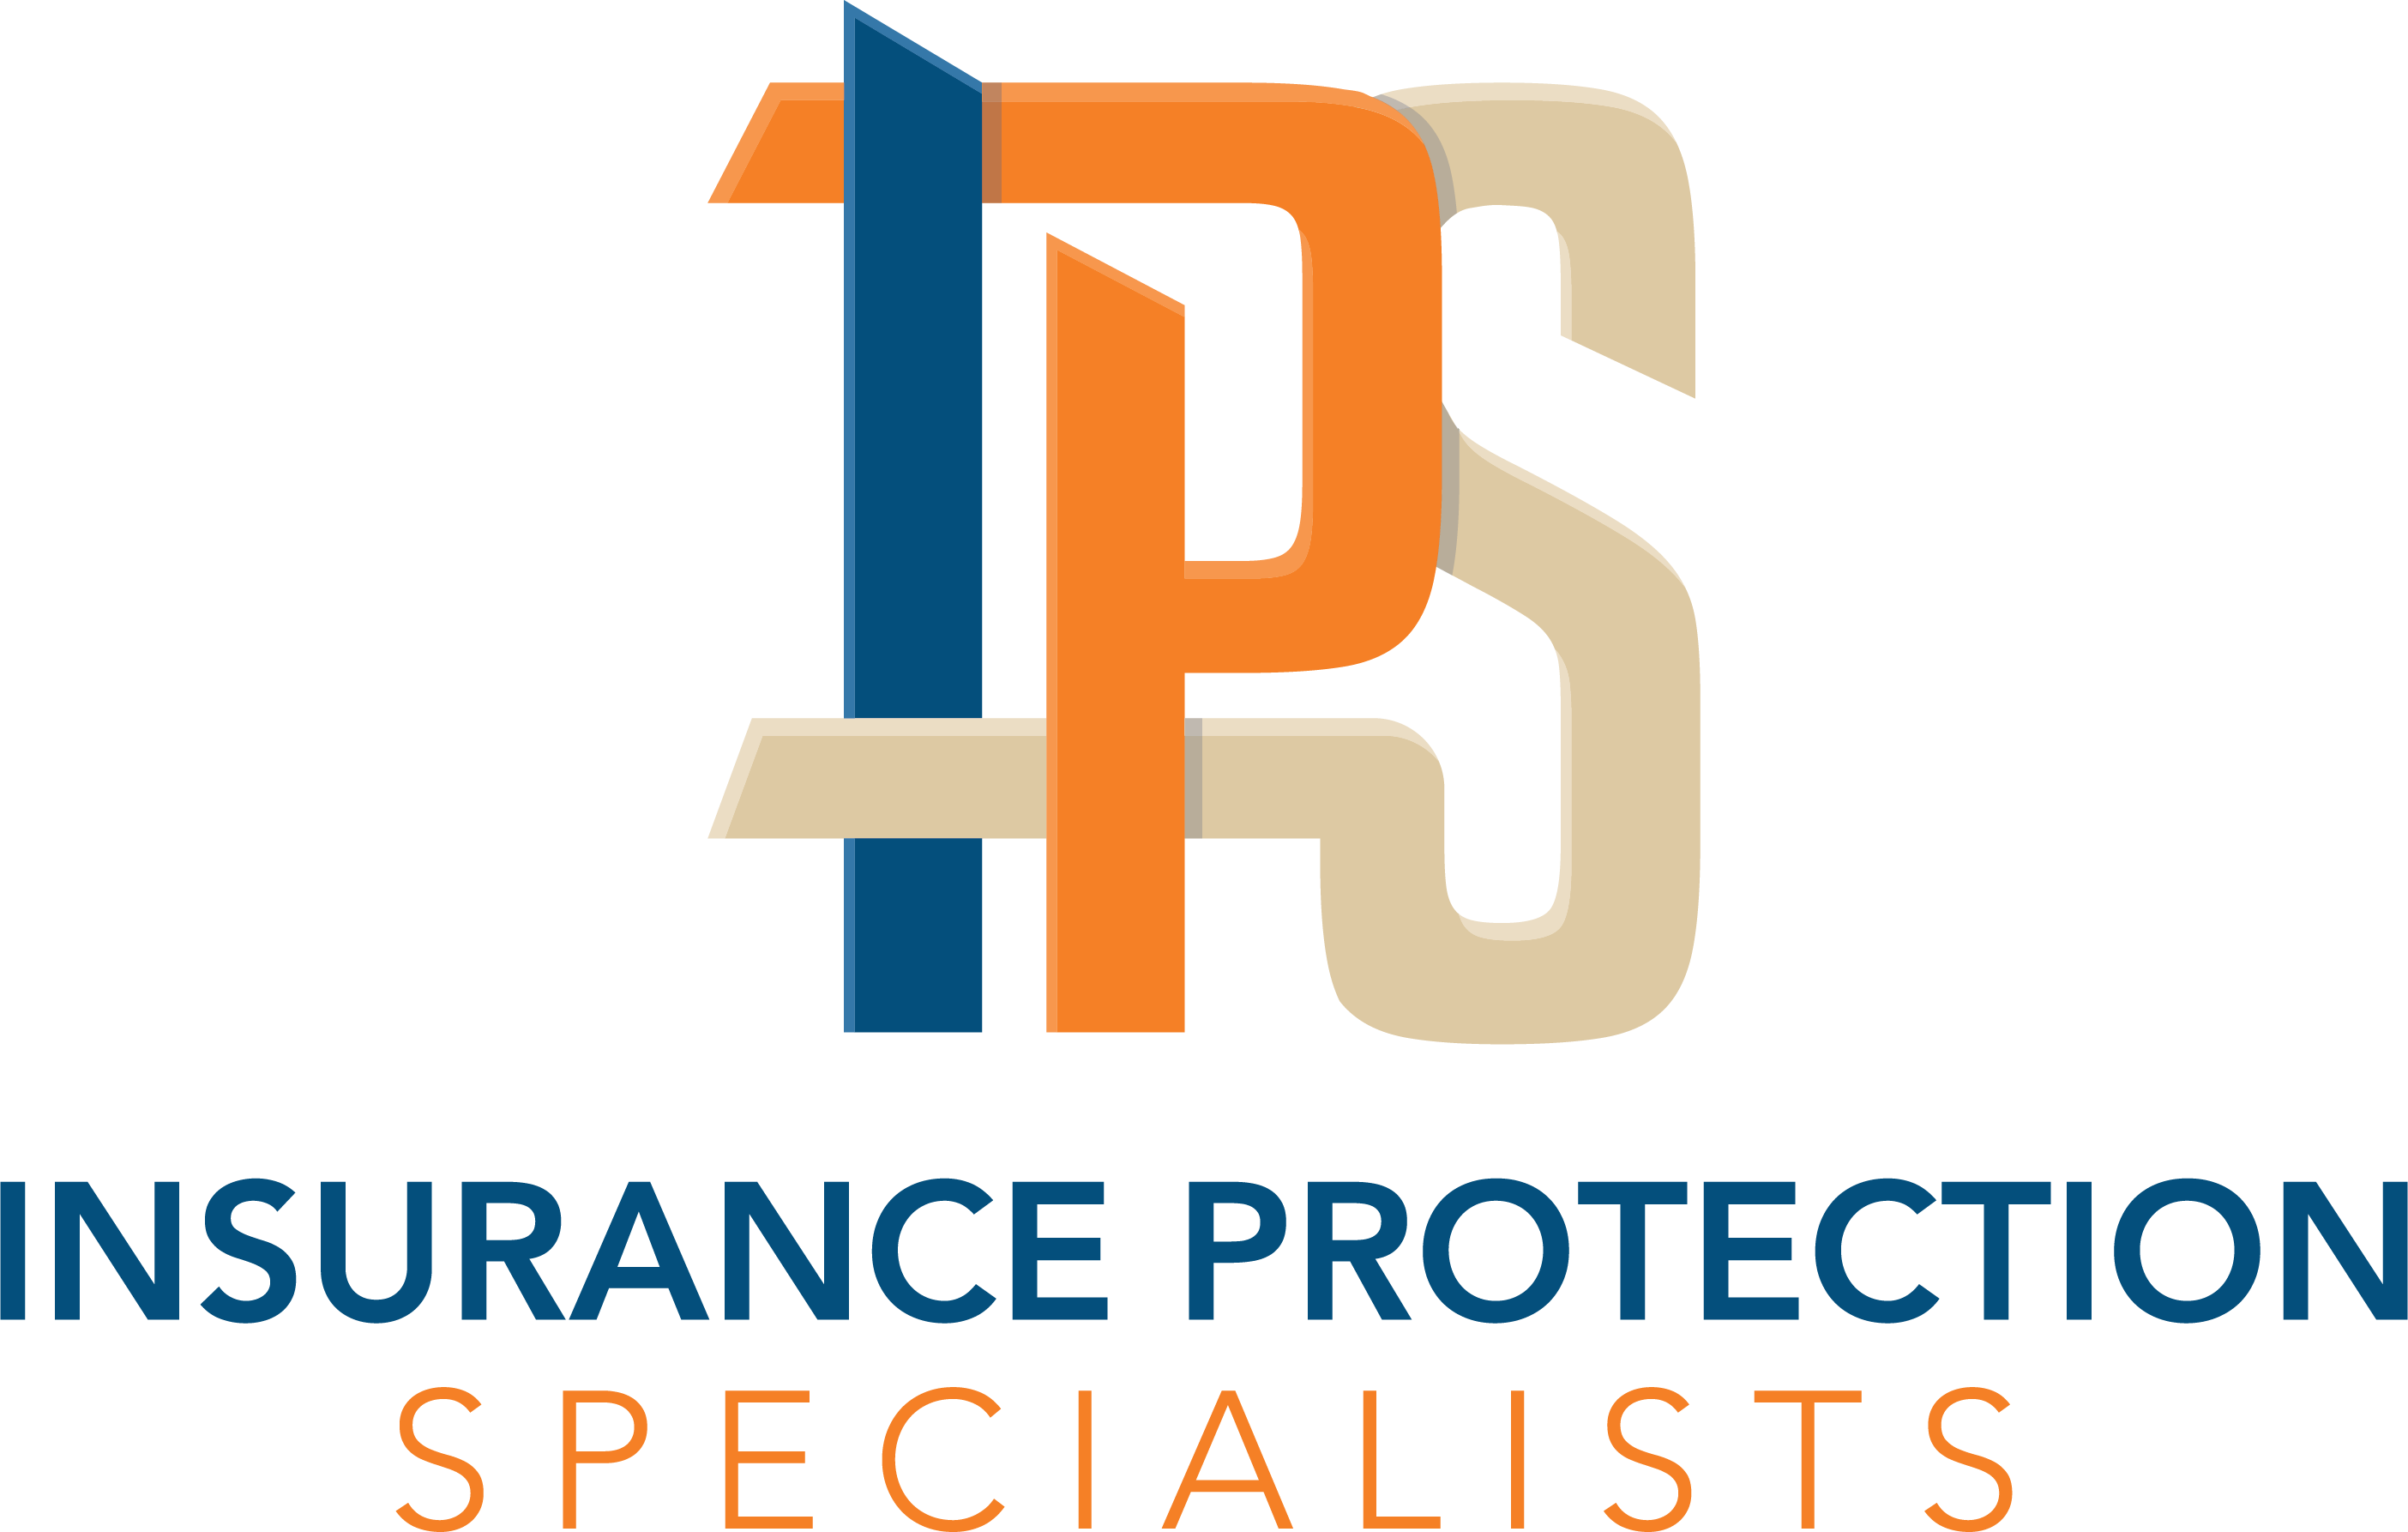 Insurance Protection Specialists